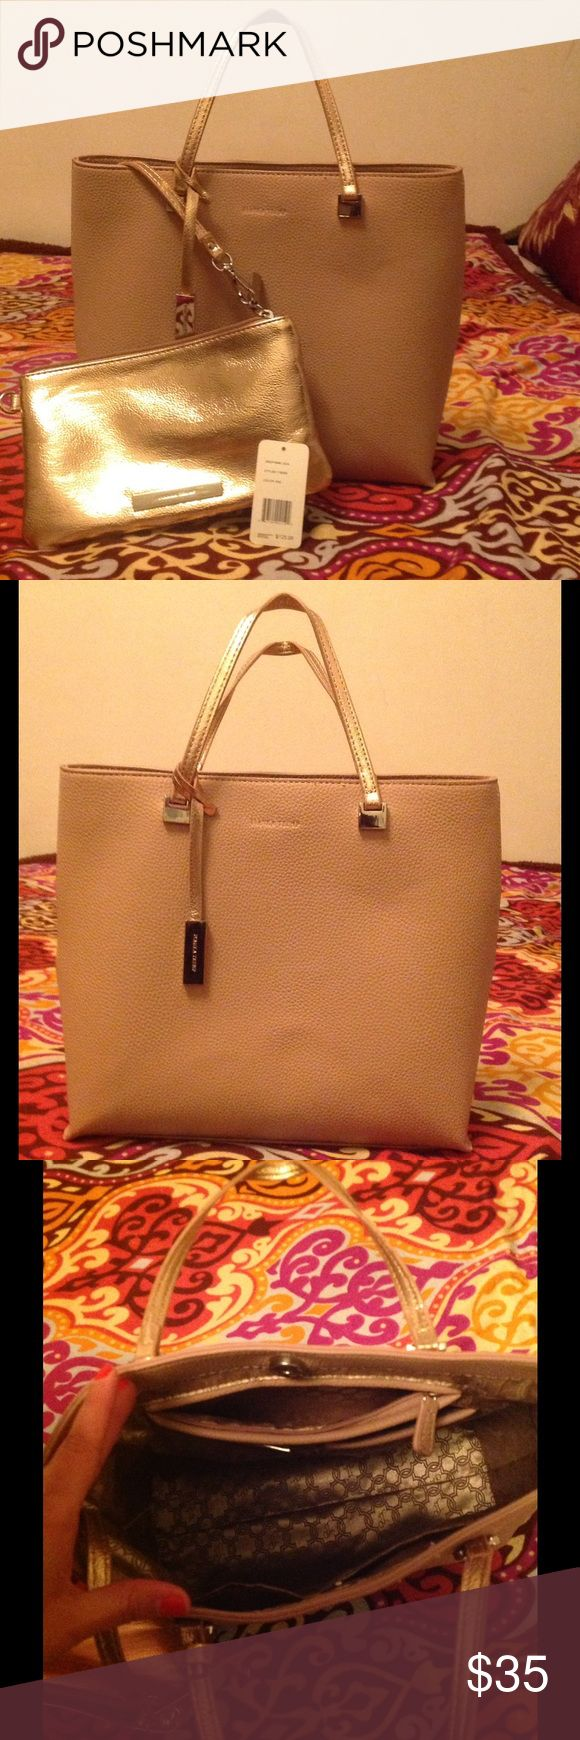 "❣Elegant Ivanka Trump lady bag💕 Beautiful Ivanka Trum lady bag. Great for work or just going out. In very good condition. Cosmetic bag included. In excellent condition. Simulated leather. 4 small pockets inside. It's really a lovely bag. Color is cream-rose, or nude. Measurements tall 11"". Long 12"". Wide 4"". My home is pets and smoke free. Bundle and save 15% and get a present 💋❣🌸🙂 Ivanka Trump Bags"